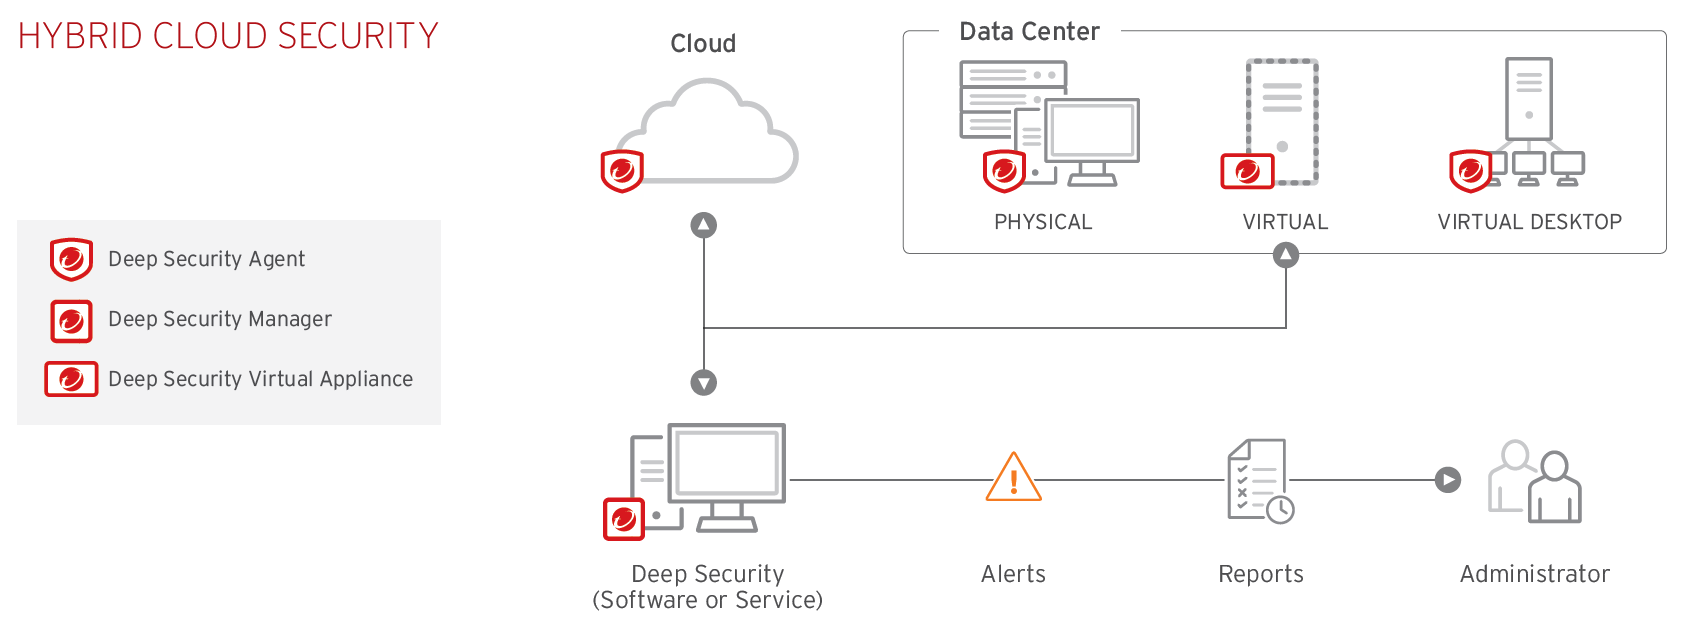 Trend Micro Hybrid Cloud Security